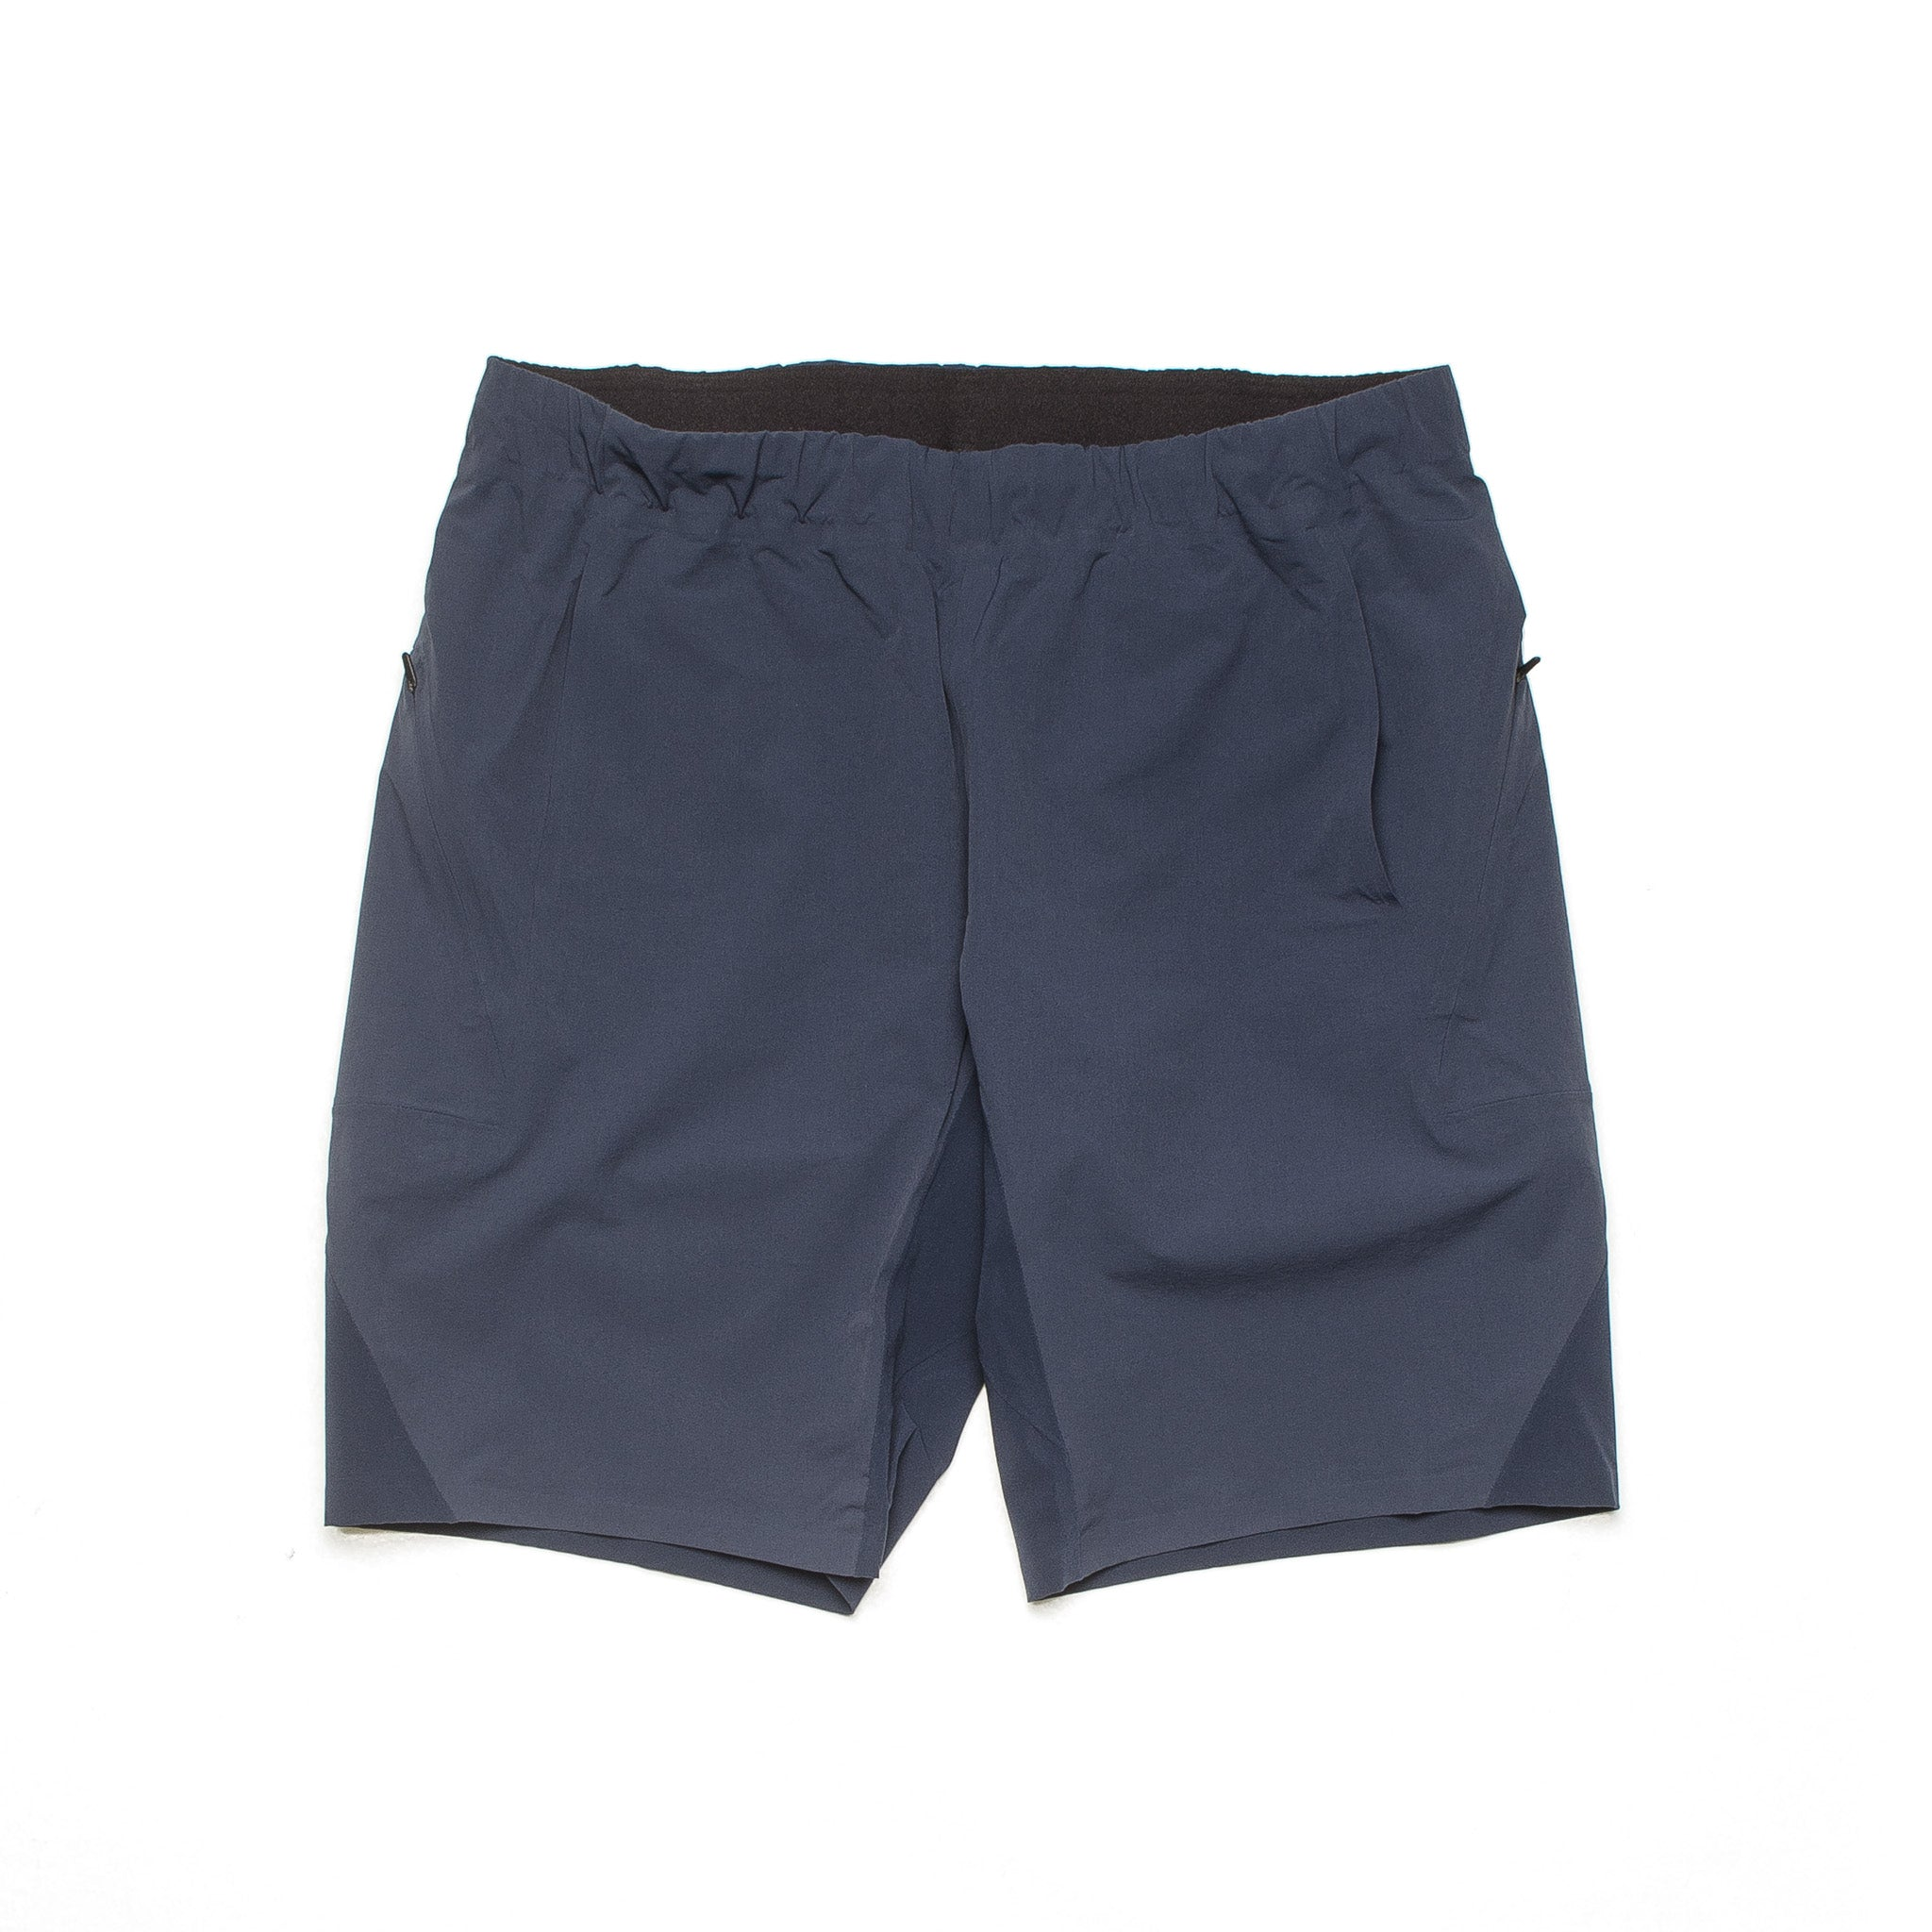 Secant Comp Short 23117 Dark Navy